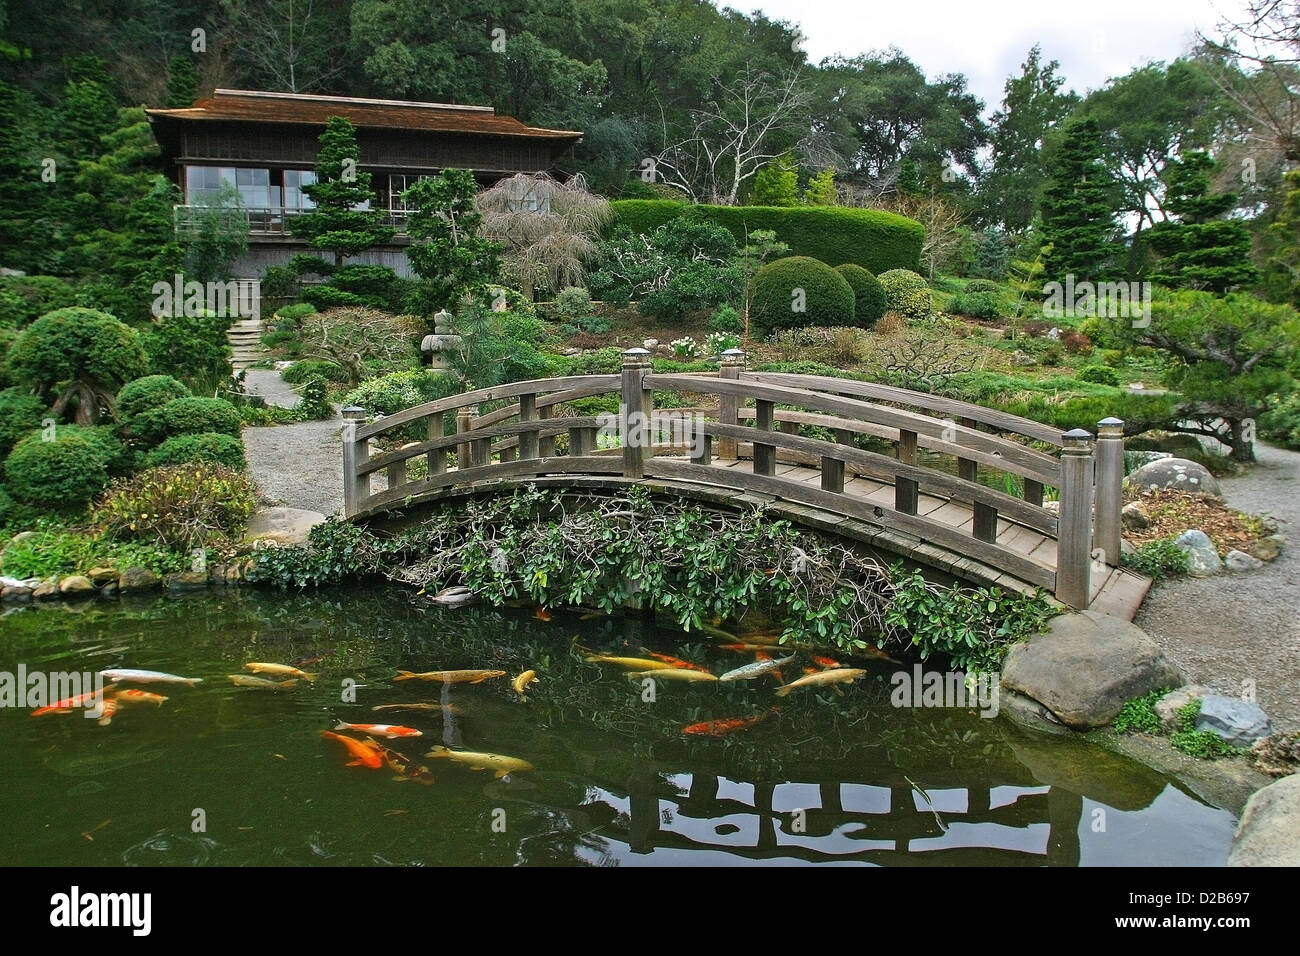 hakone gardens is a traditional japanese garden in saratoga california stock image - Japanese Garden